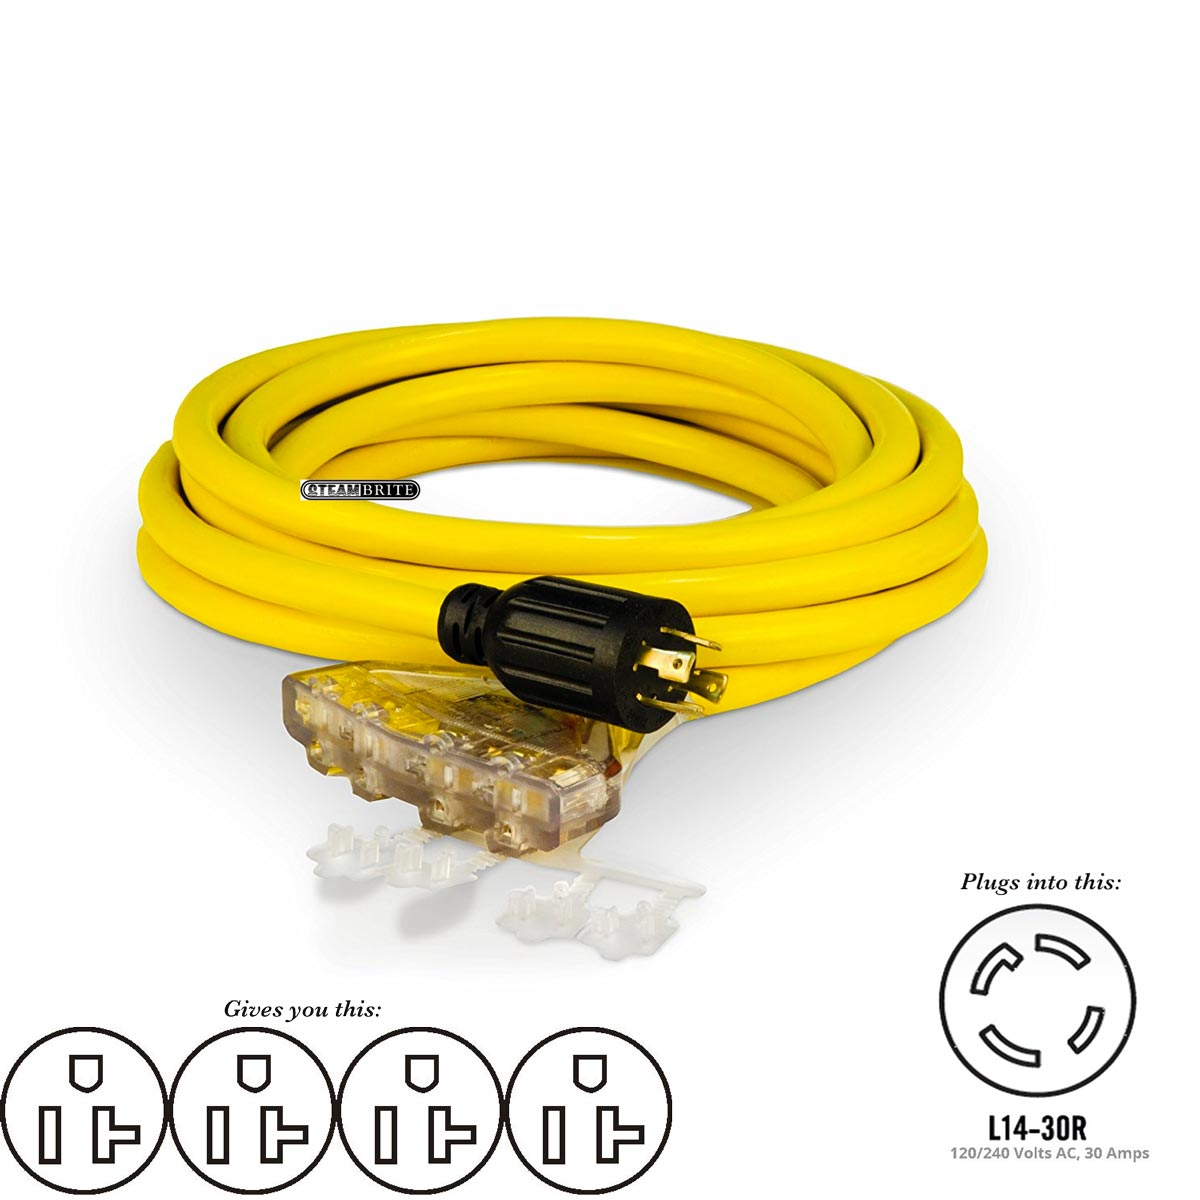 Be Pressure 85 508 003 Champion Power 48036 L14 30p X Four 5 20r Wiring A L1430p Plug Click To Enlarge